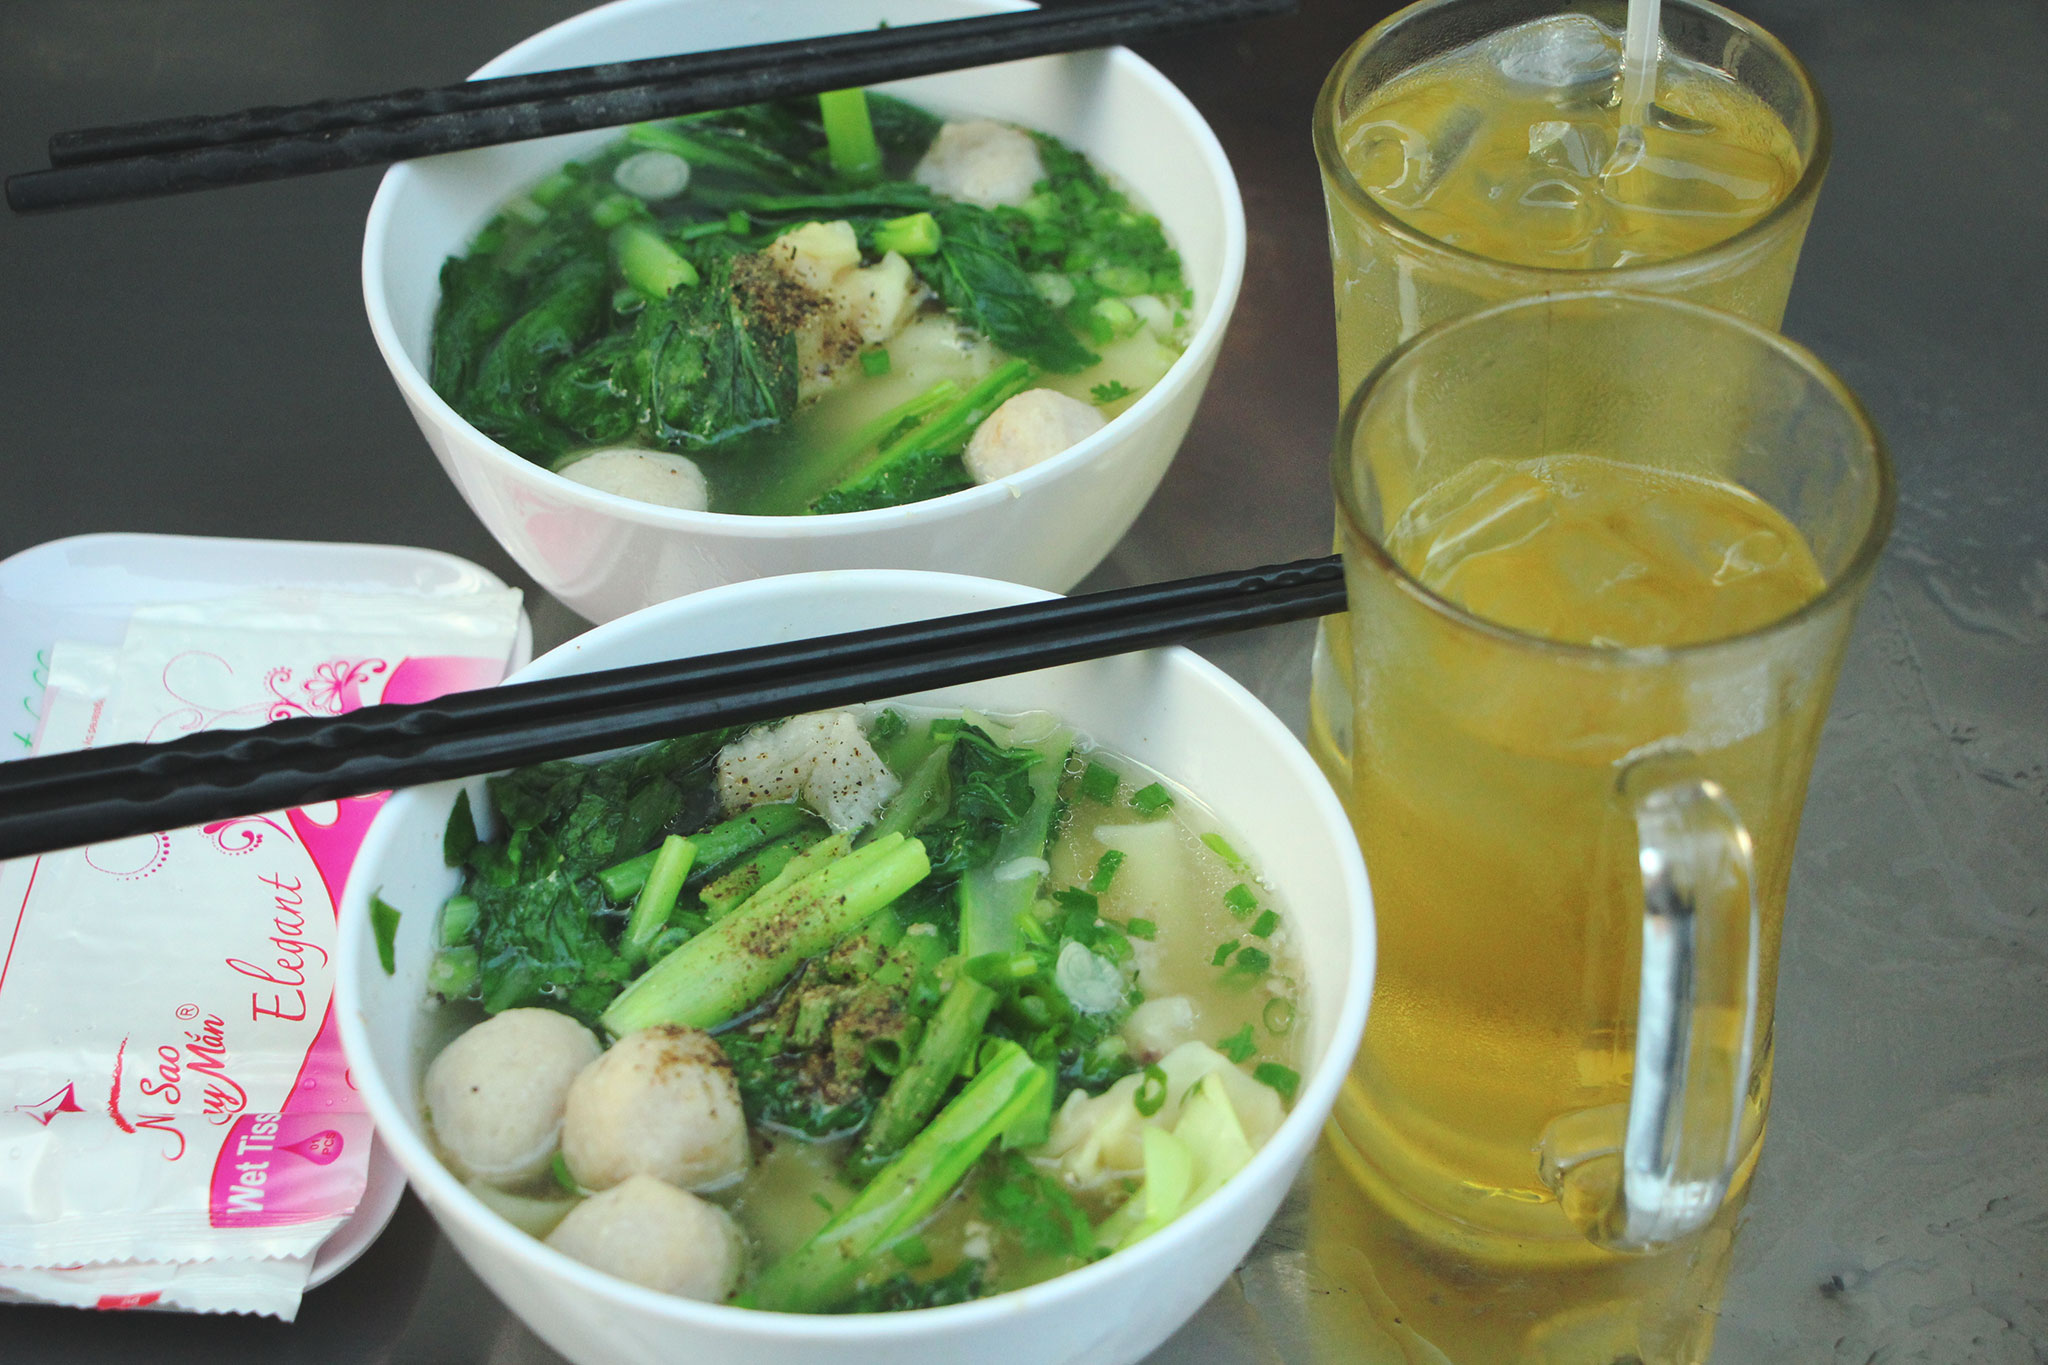 Noodles with meatballs and dumplings, with cool and refreshing iced-tea to start your day